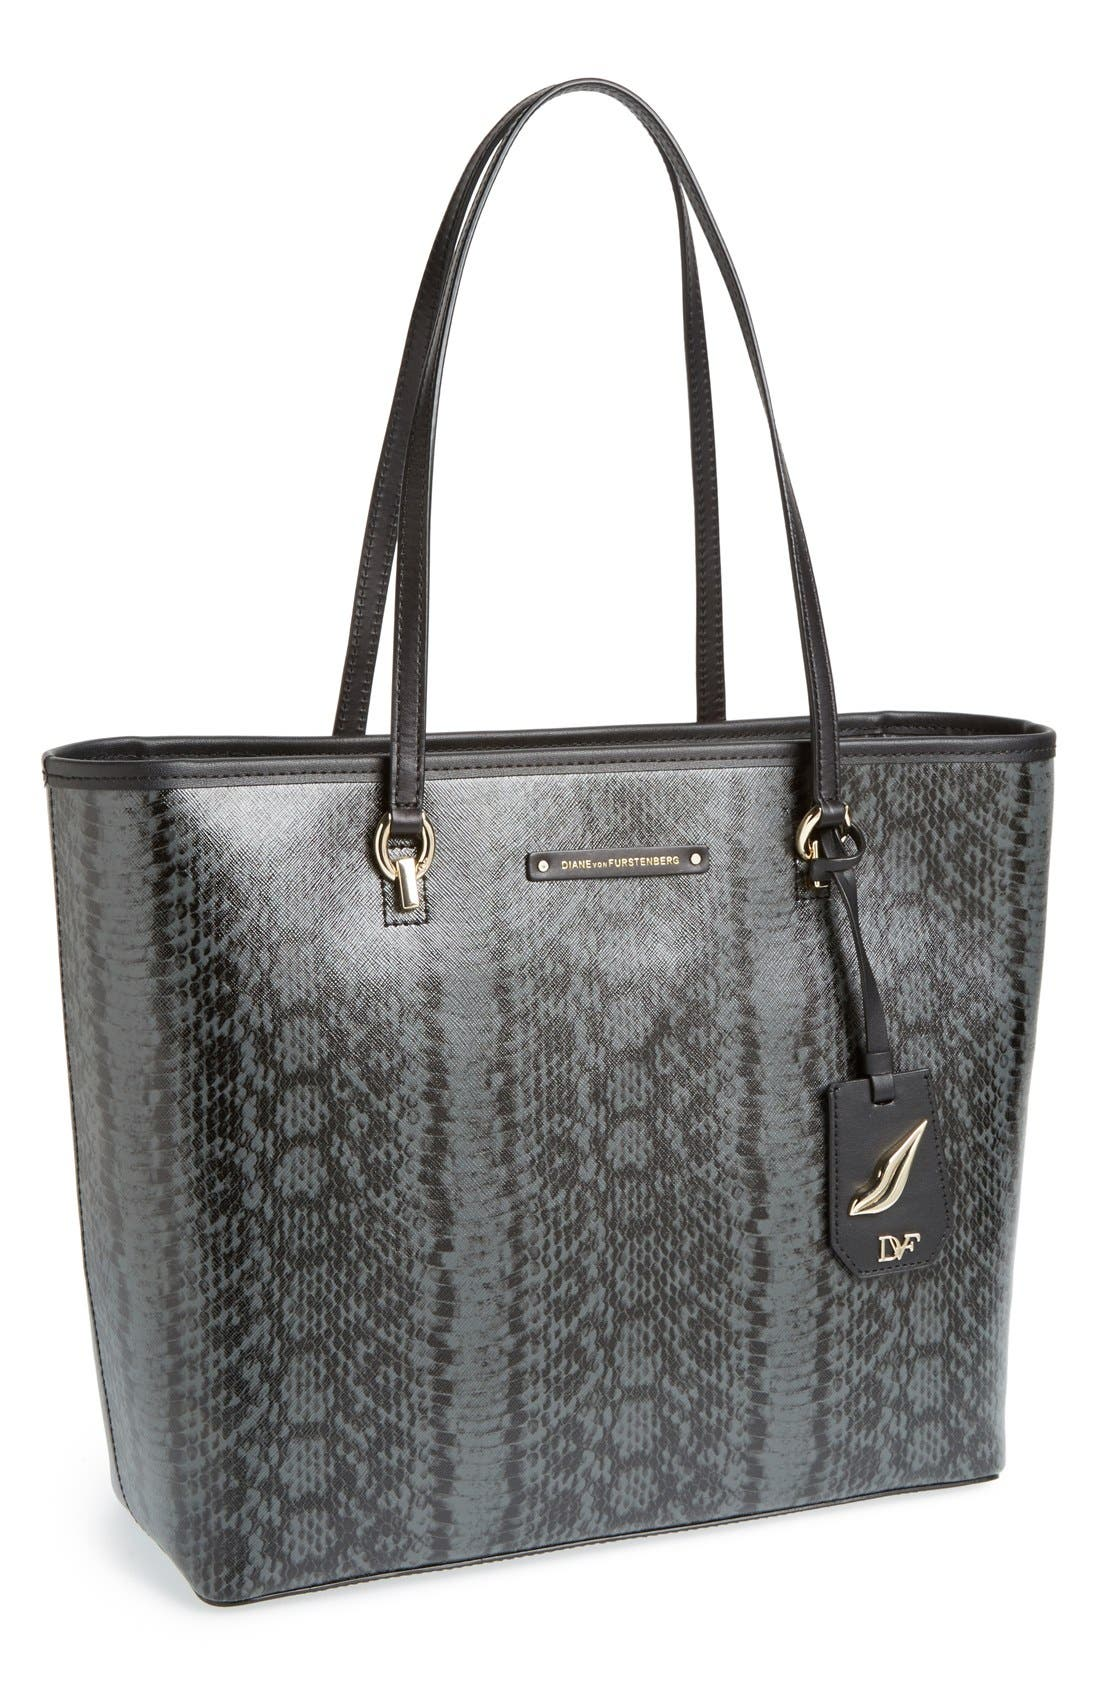 Alternate Image 1 Selected - Diane von Furstenberg 'Sutra - Ready to Go' Tote